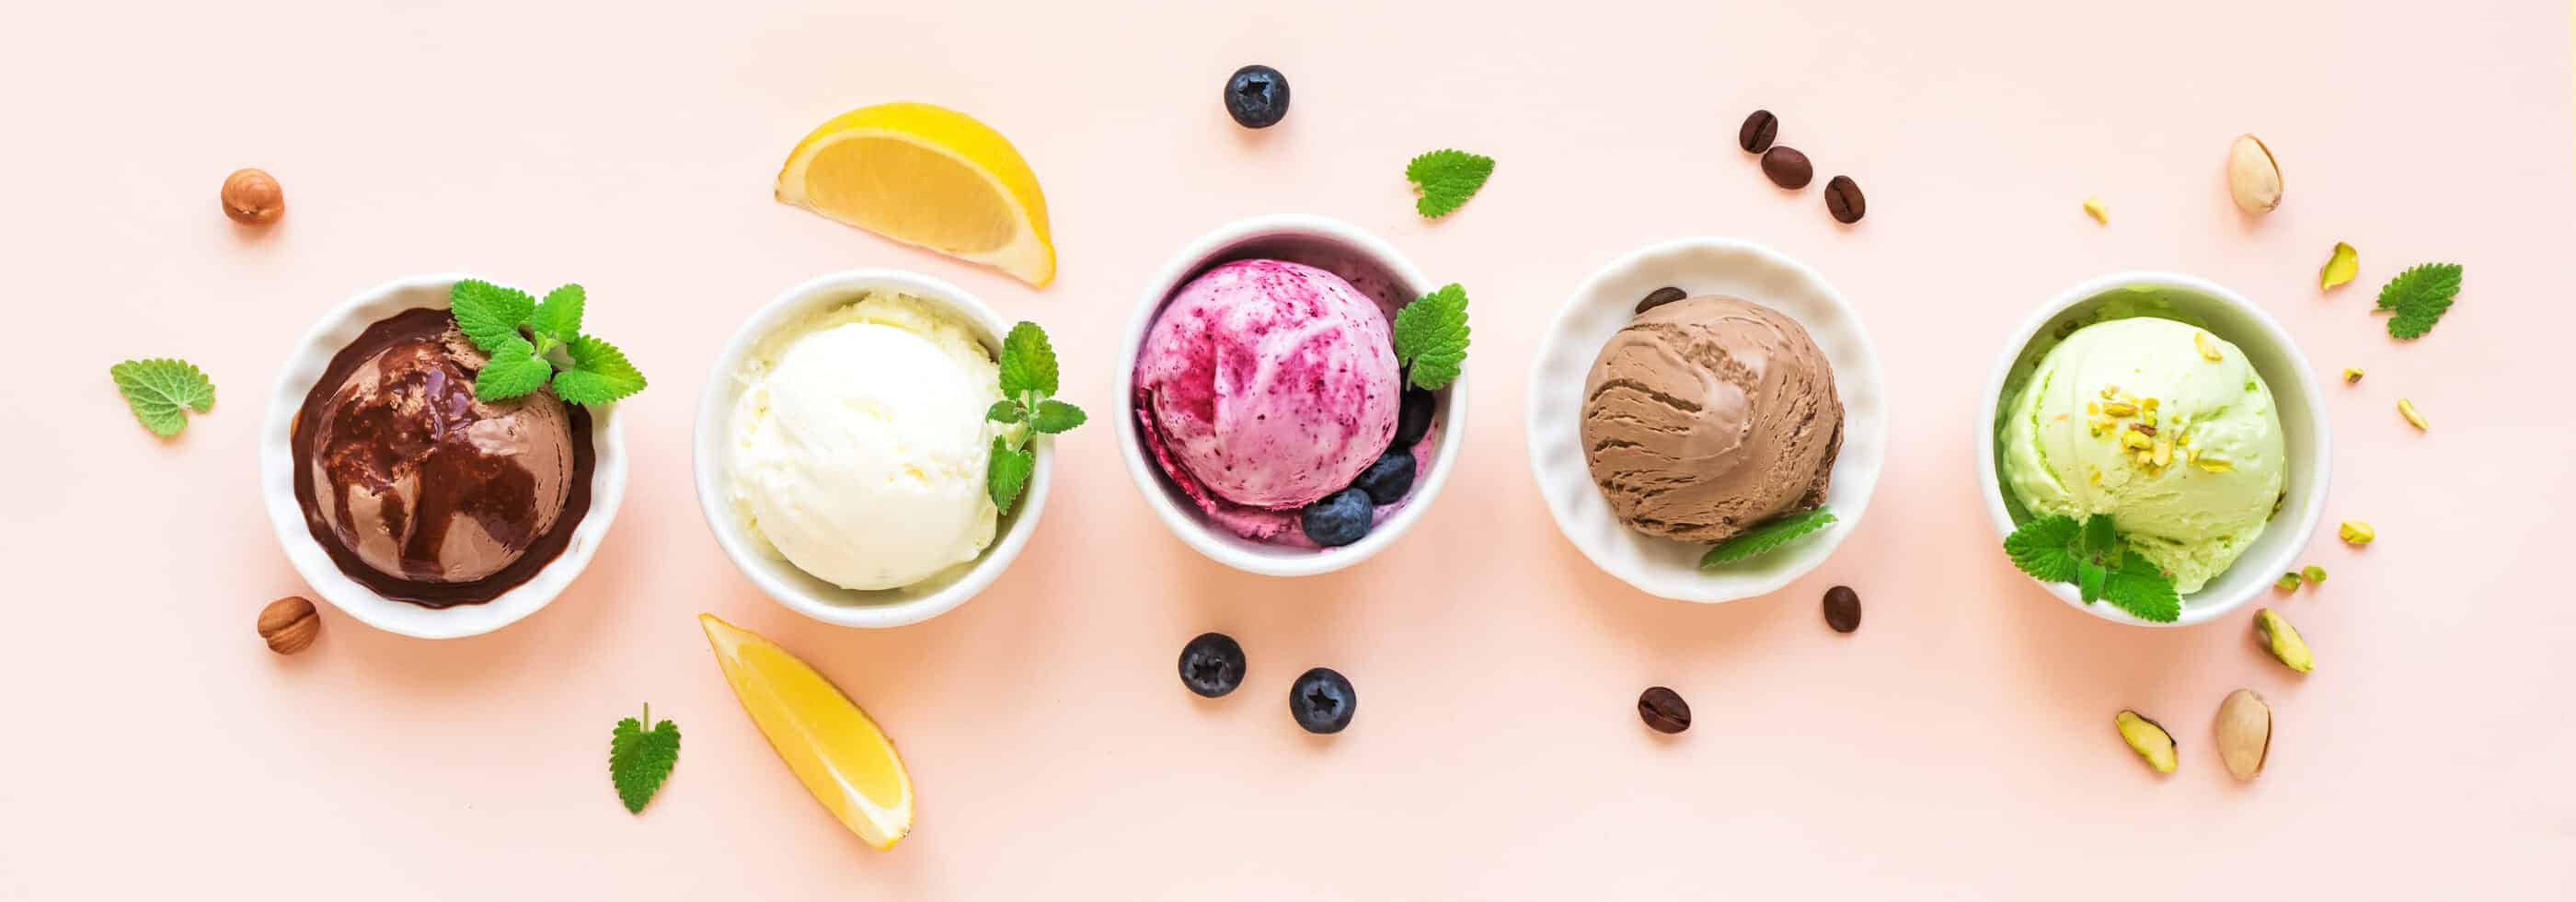 The Top 5 Healthy Ice Cream Brands For A Tasty Dessert At Home